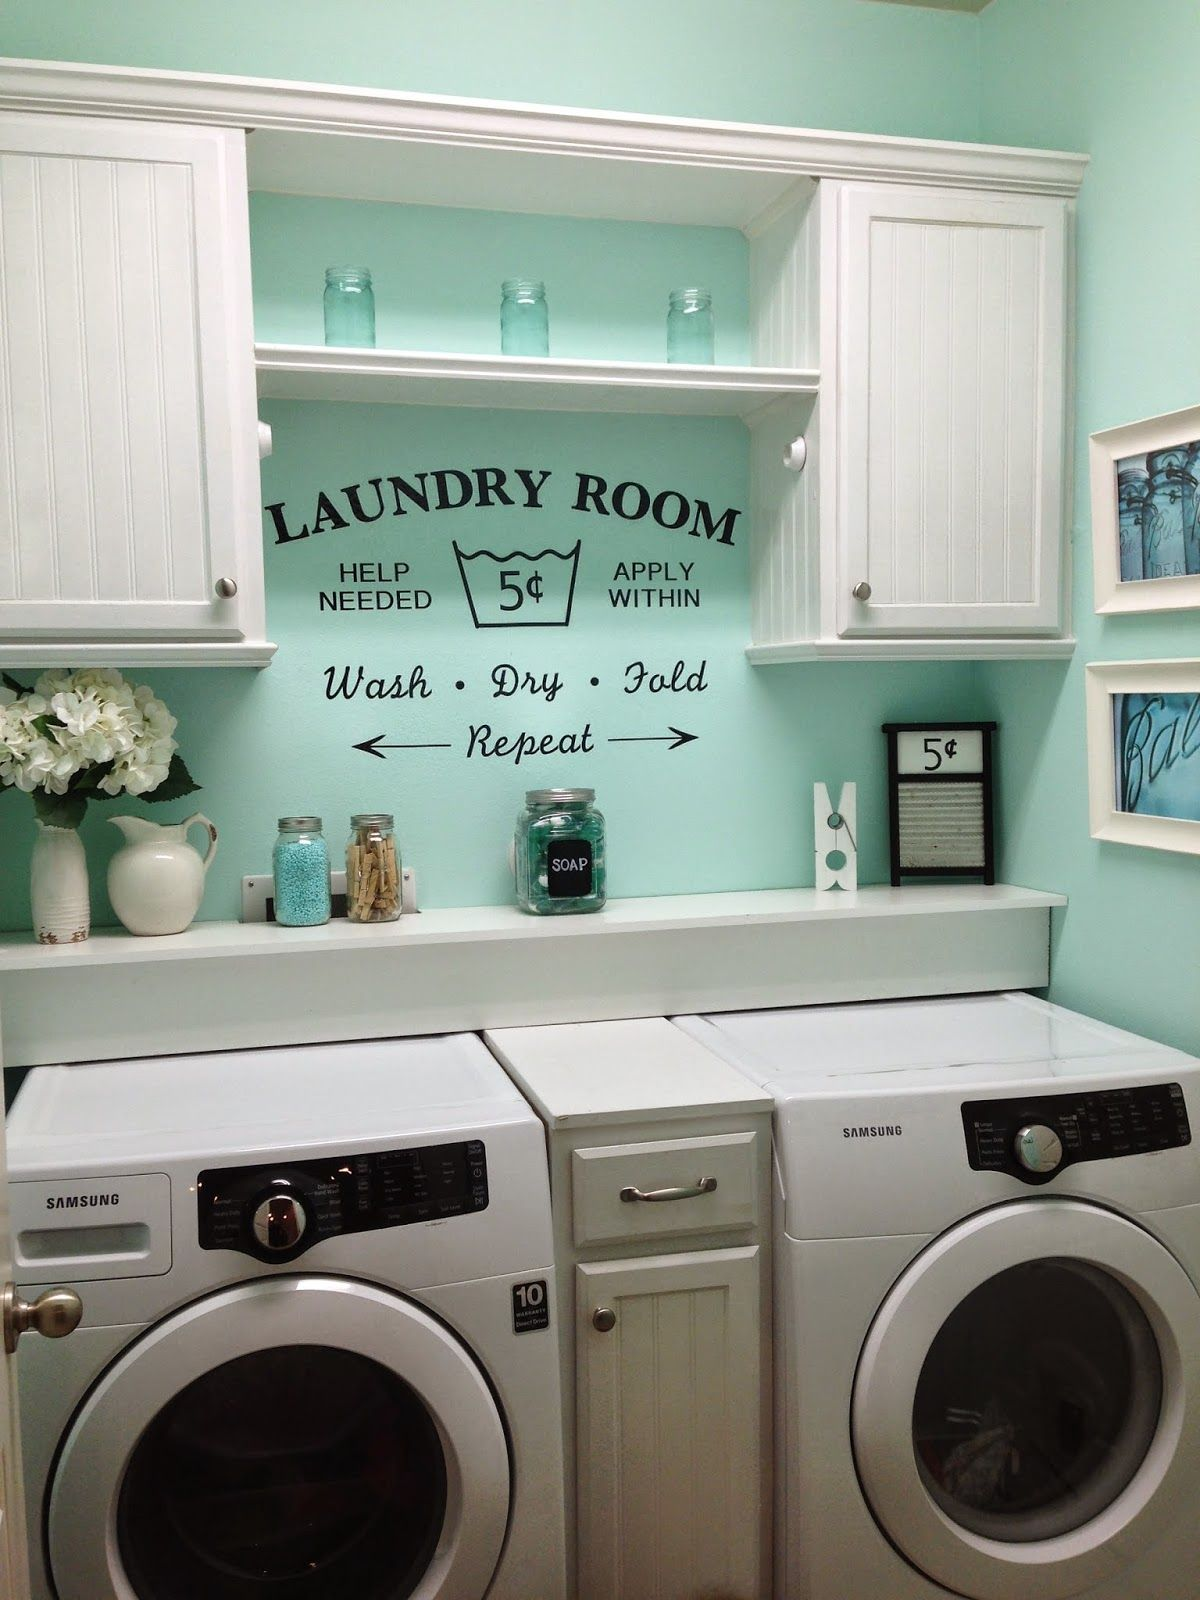 small laundry room ideas rustic shabby chic laundry room, vintage vinyl decal small laundry room EFLVGVI